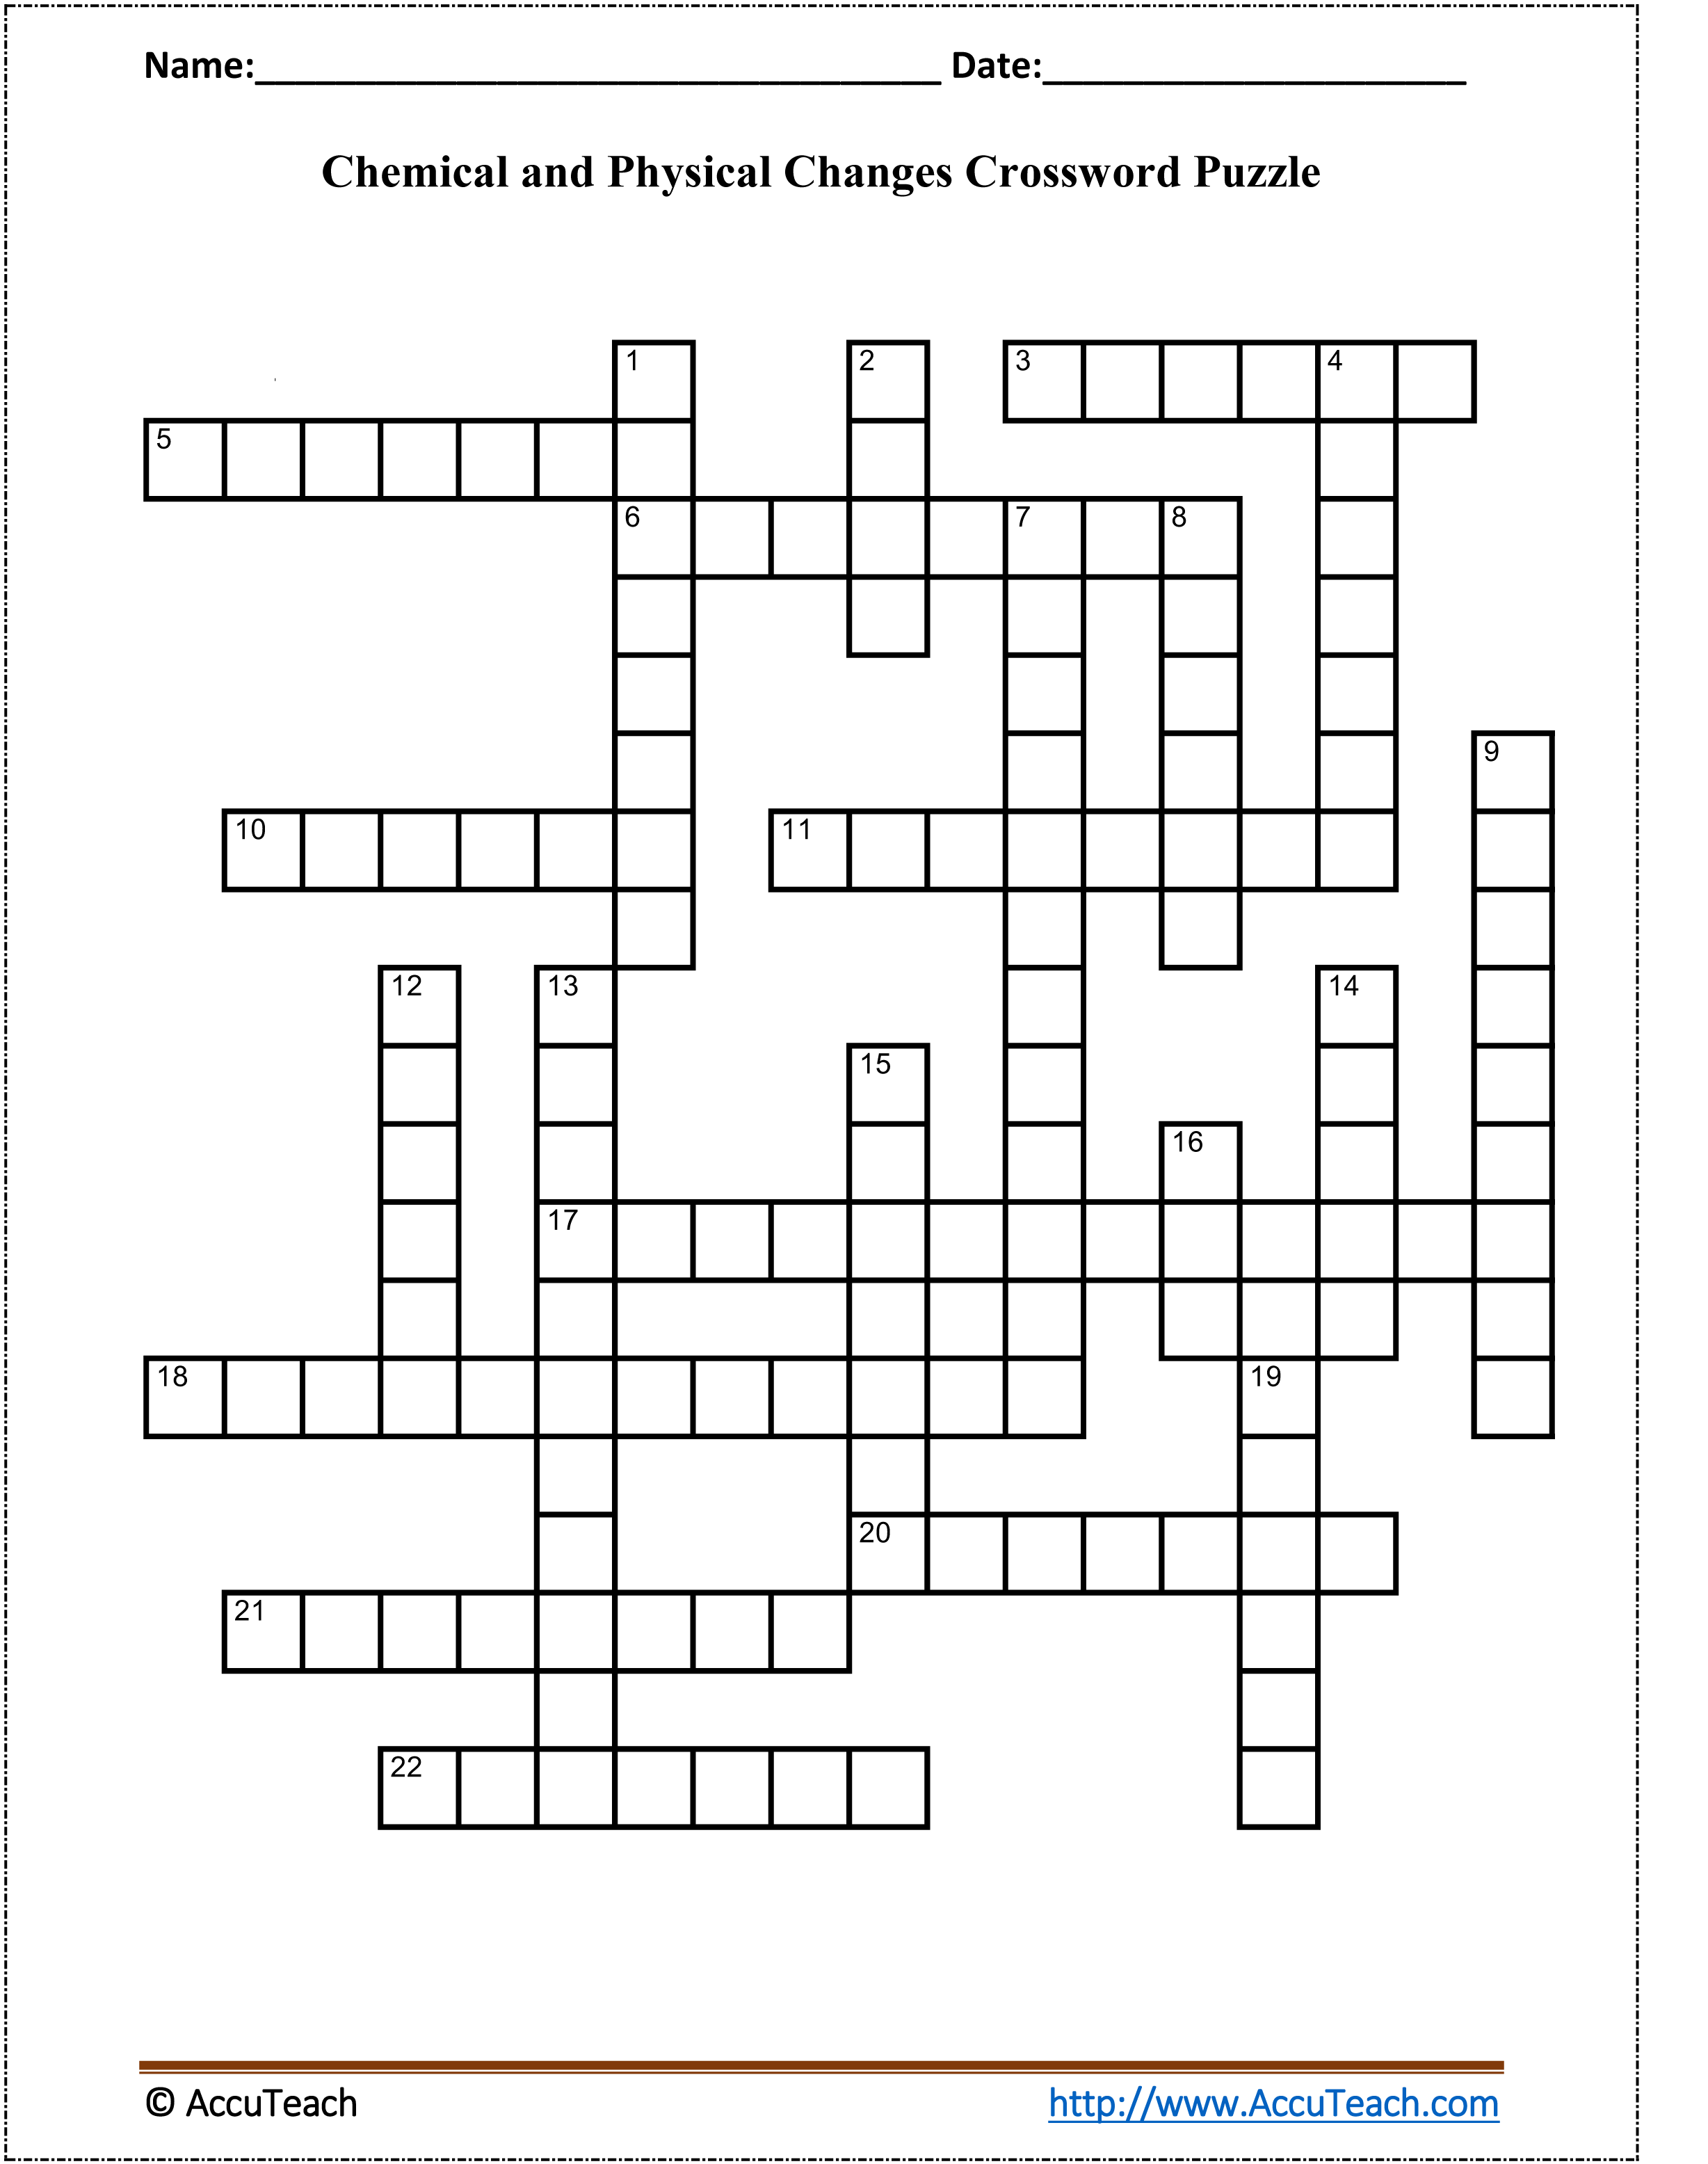 Chemical and Physical Changes Crossword Puzzle - AccuTeach [ 3111 x 2456 Pixel ]